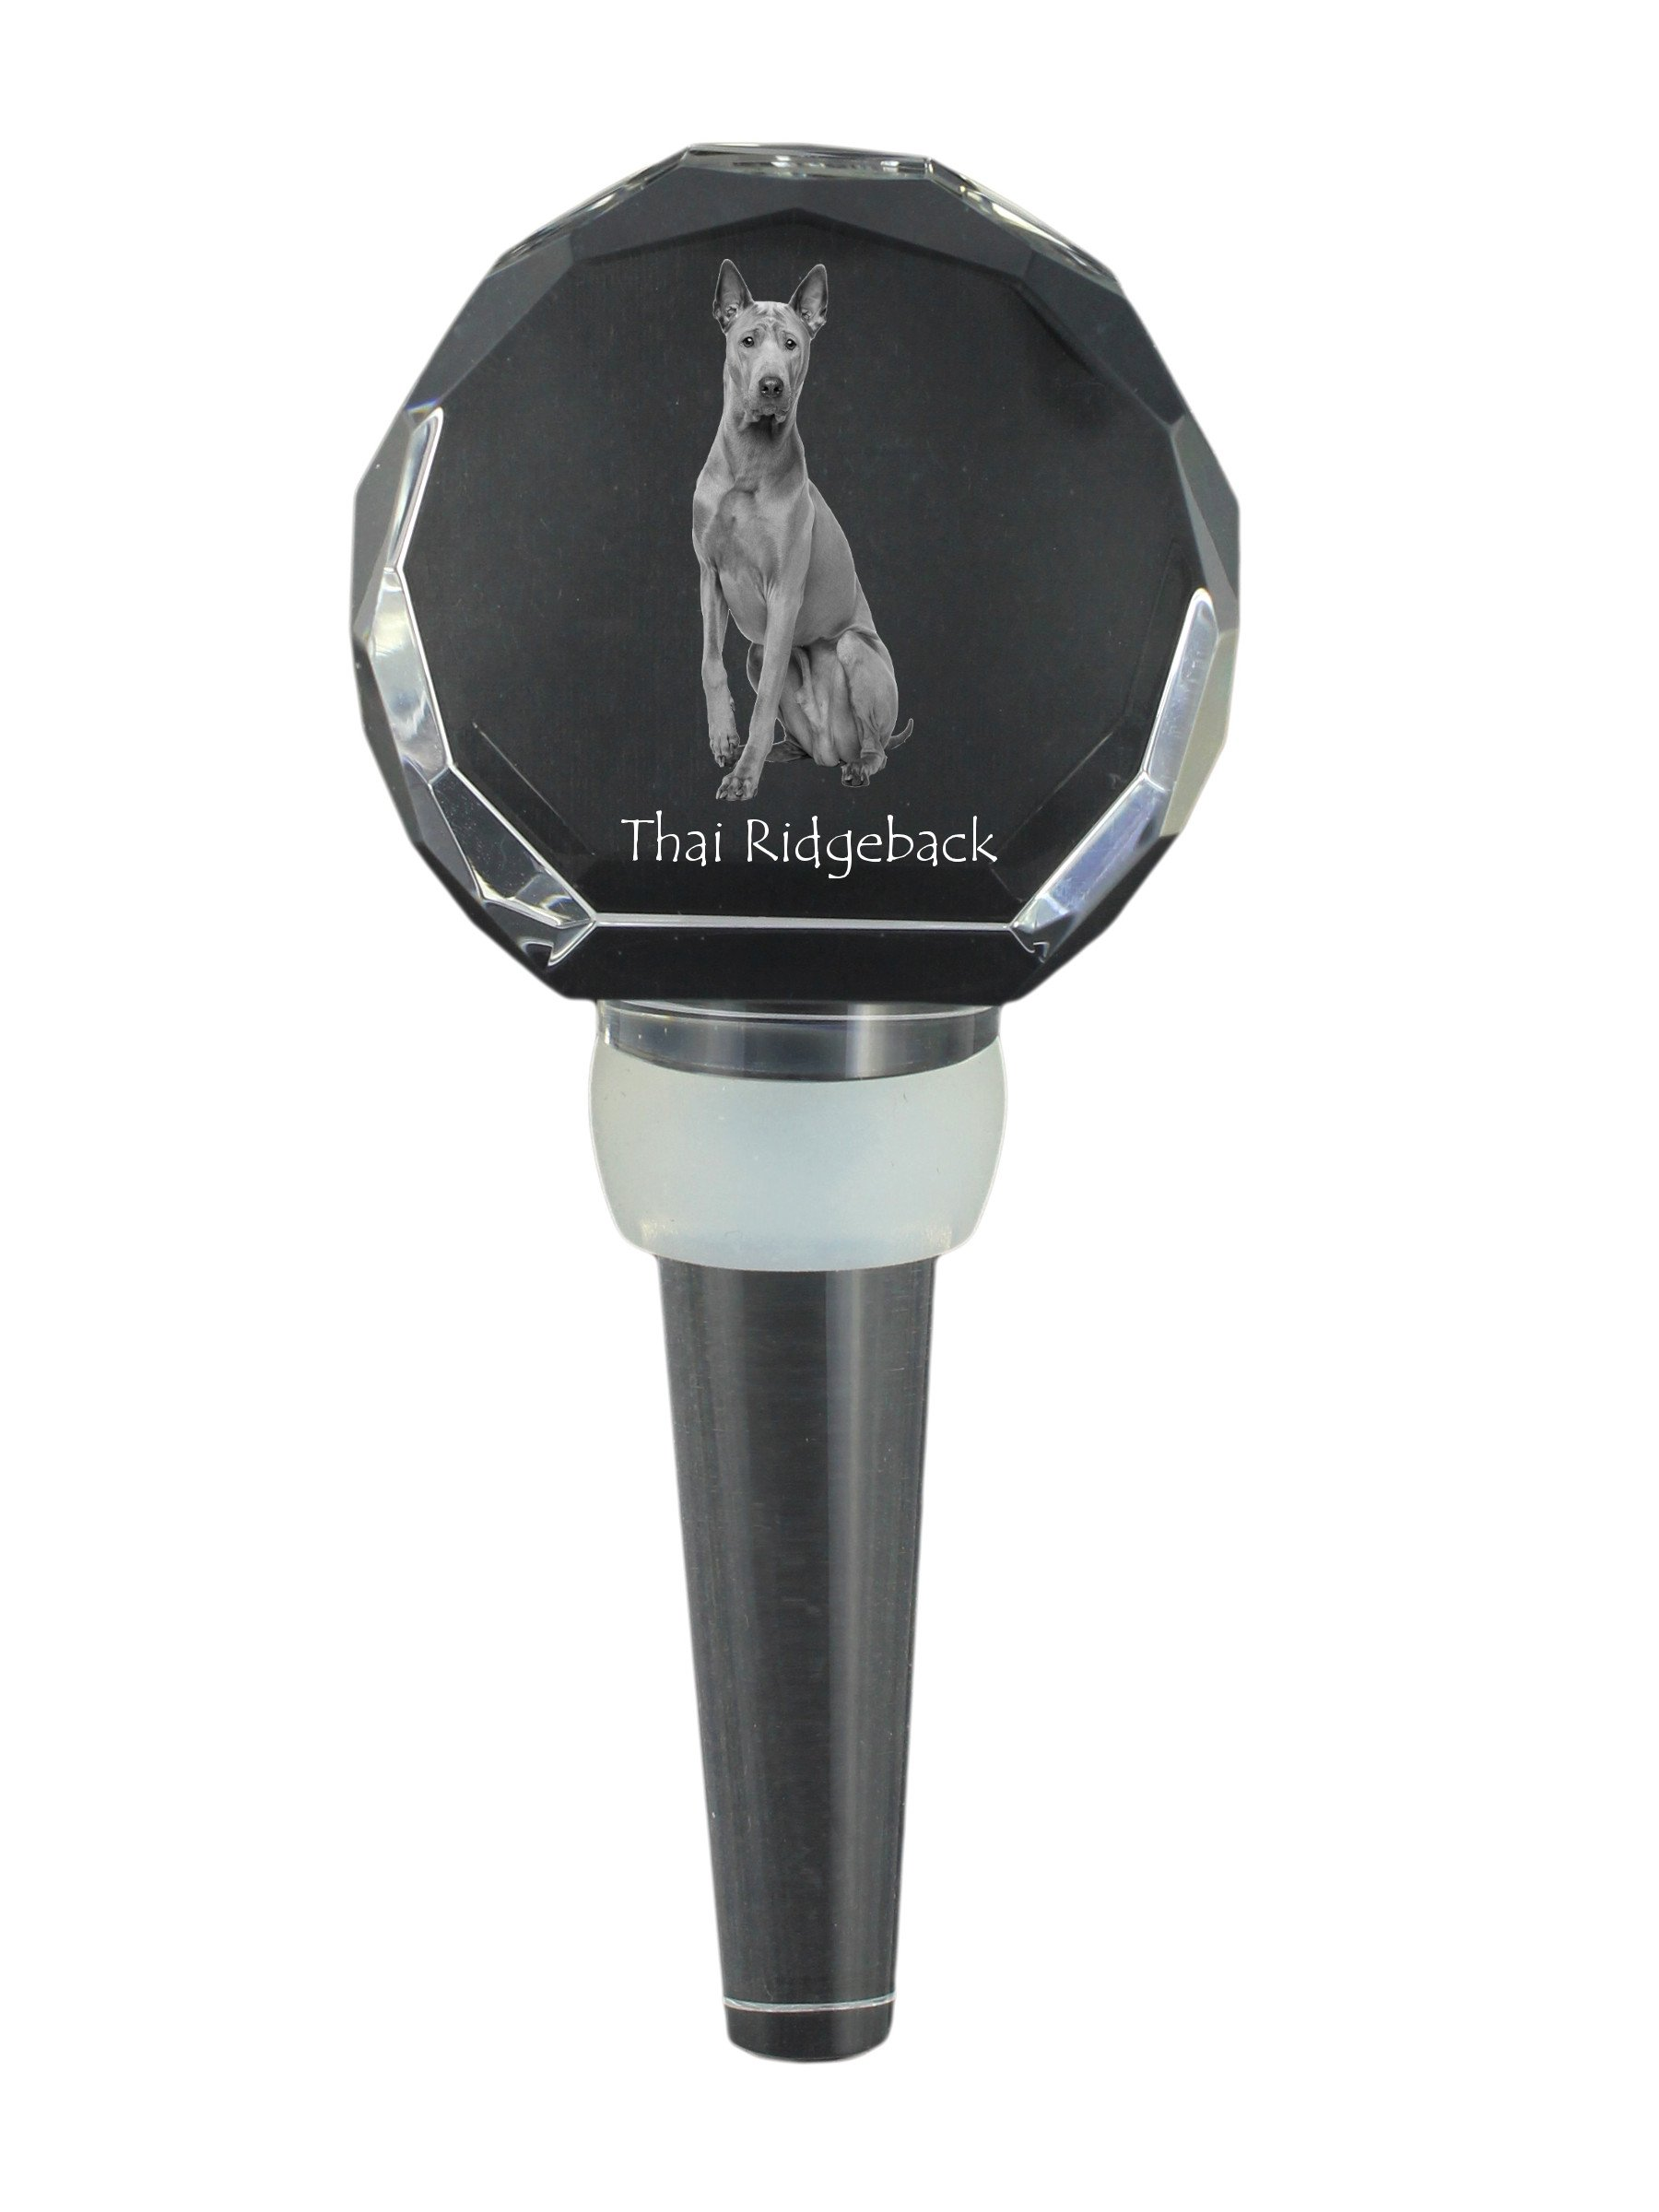 Thai Ridgeback, Crystal Wine Stopper with Dog,, New collection